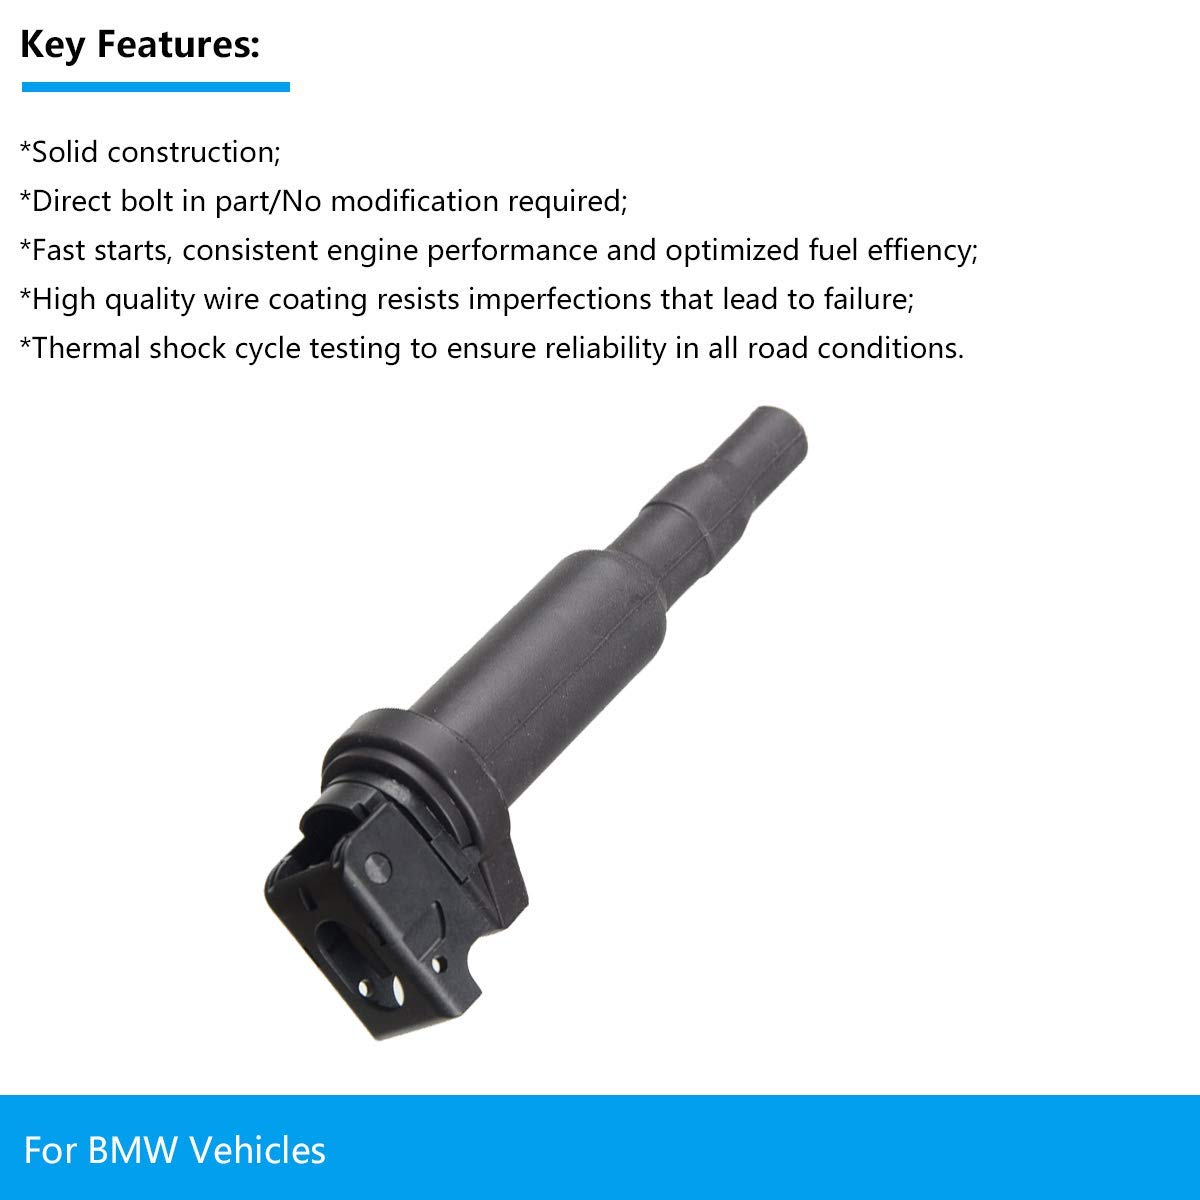 2 Yr Warranty FAERSI Ignition Coil Pack of 1 Replaces OE# 0221504470 for BMW 325i 325Ci 328i 330Ci 335i 525i 528i 530i 535i 545i 745Li X3 X5 M5 M6 Z4 /& More